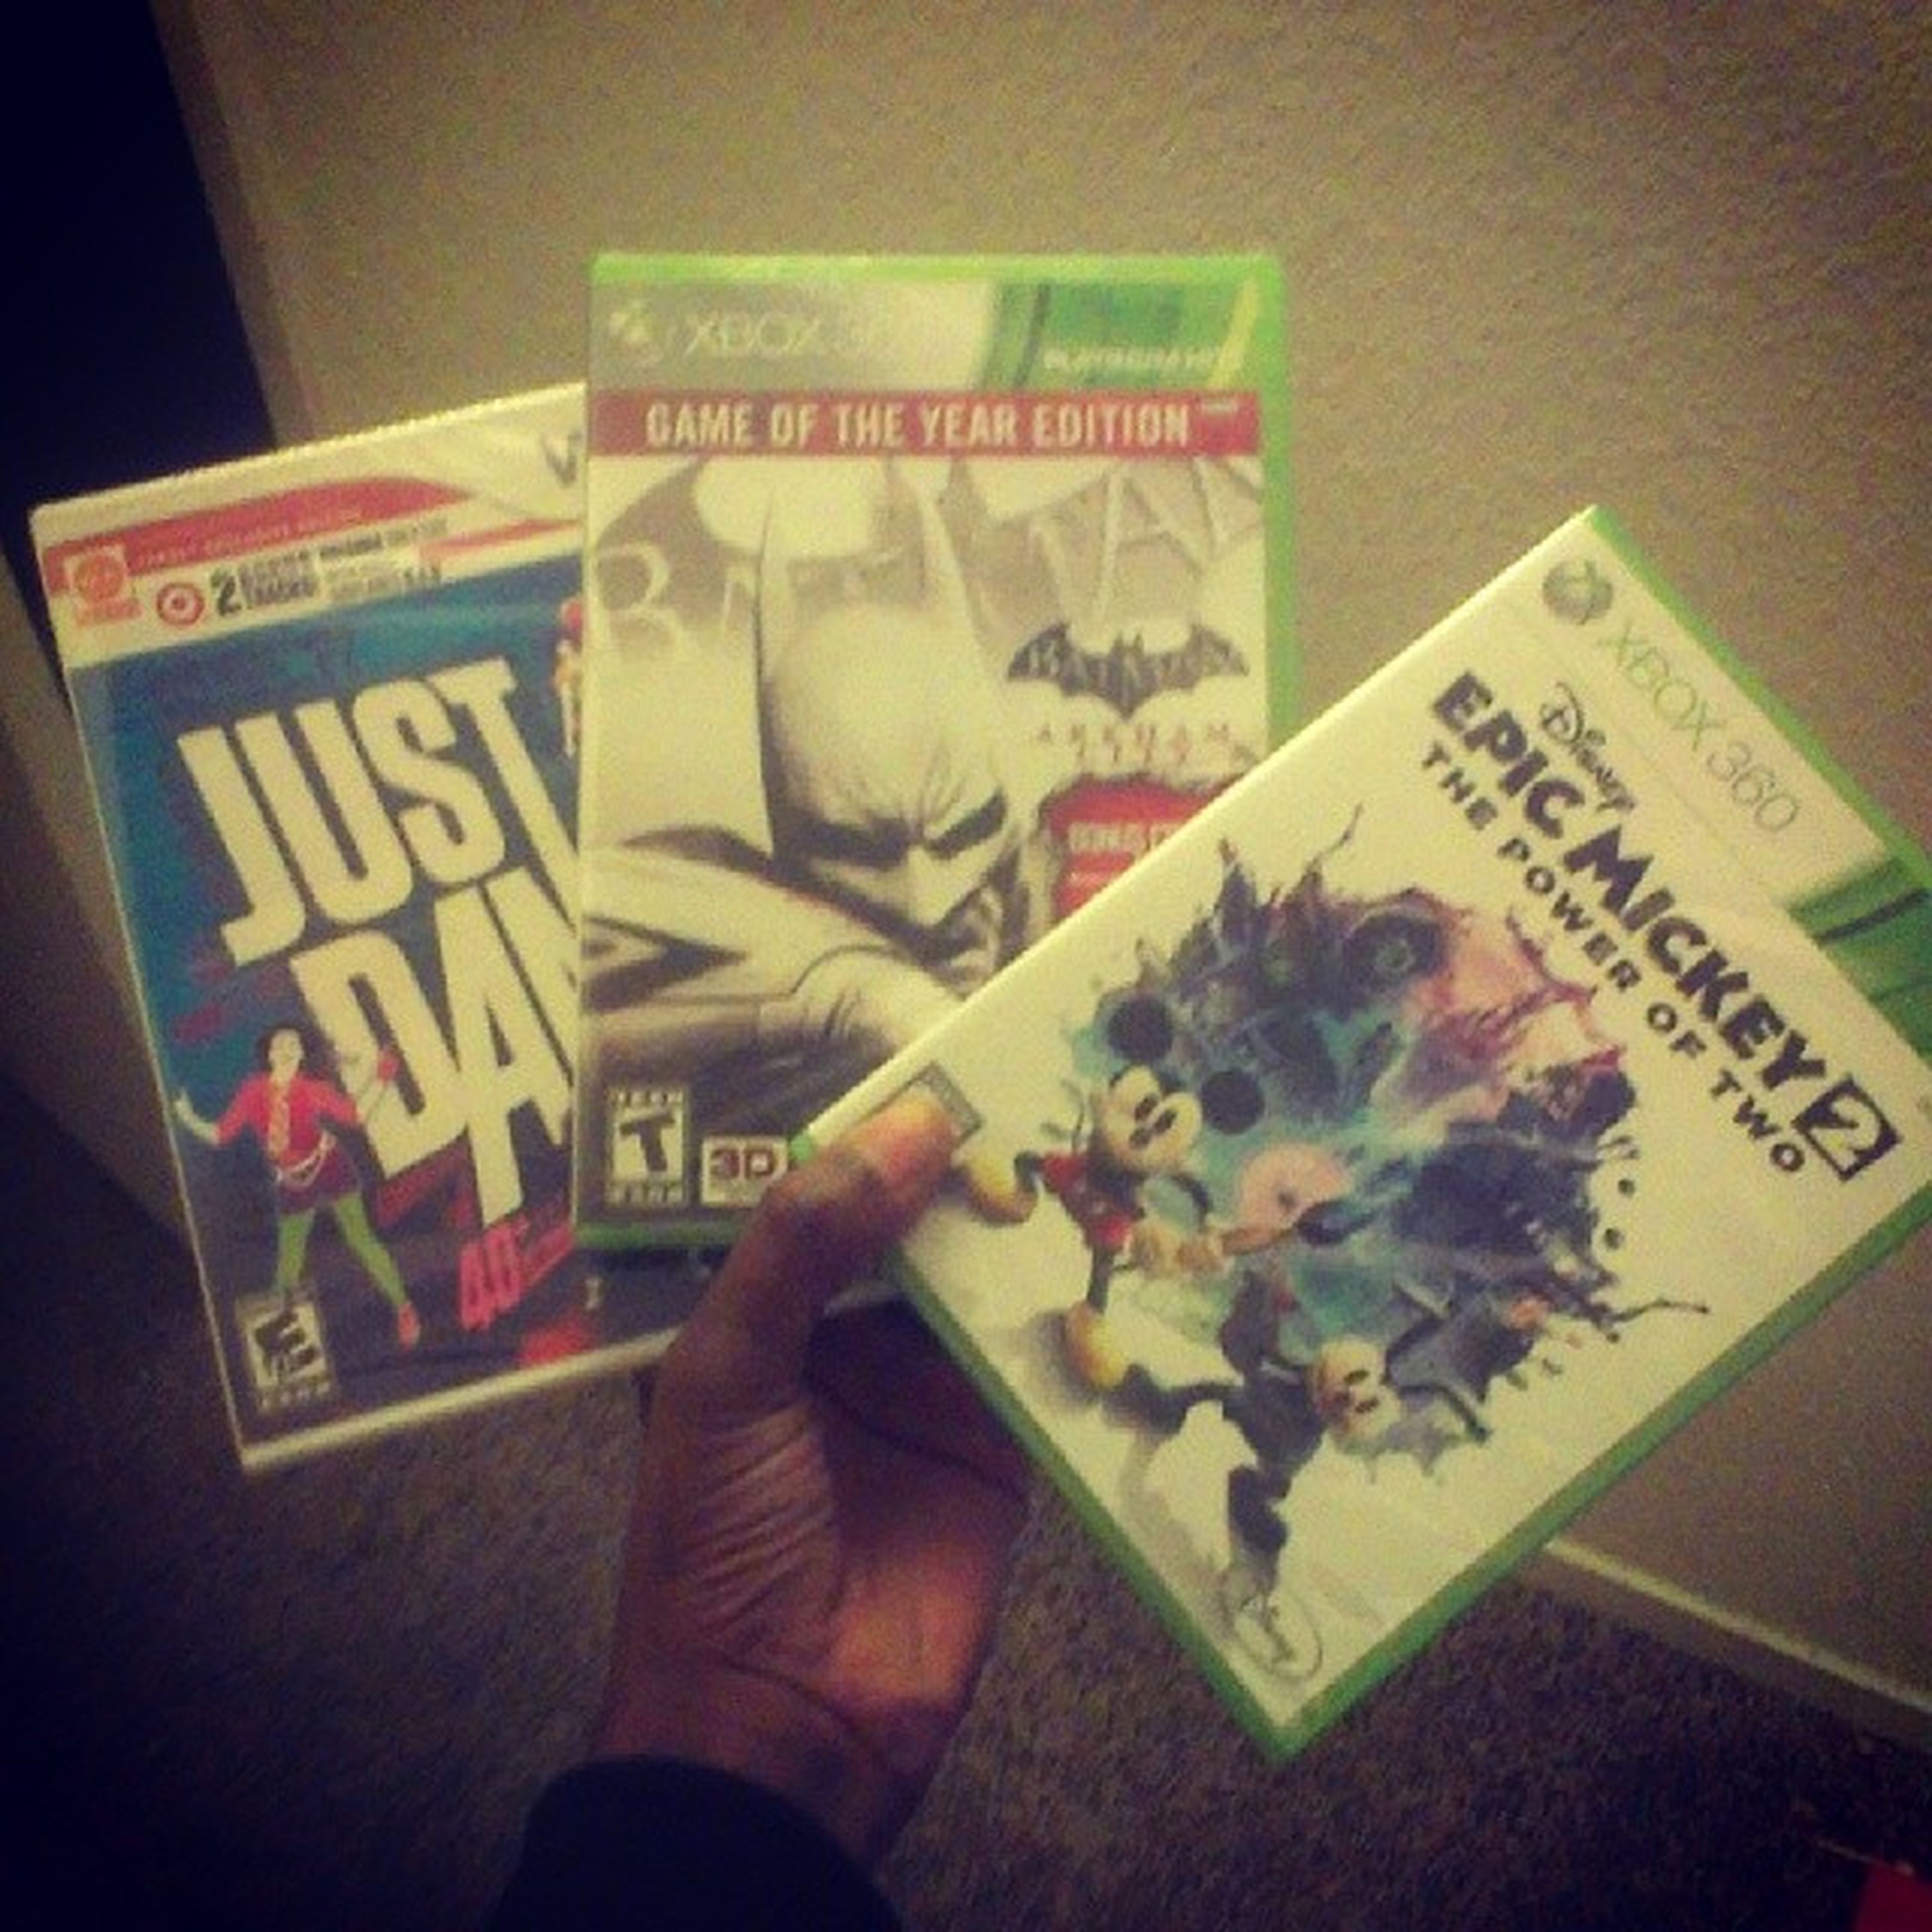 Target had a buy 2 get 1 free sale on #videogames so...#new #games. Xbox New Nintendo Games Videogames ArkhamCity Xbox360 Justdance Wtfgamersonly Justdance3 Epicmickey Epicmickey2